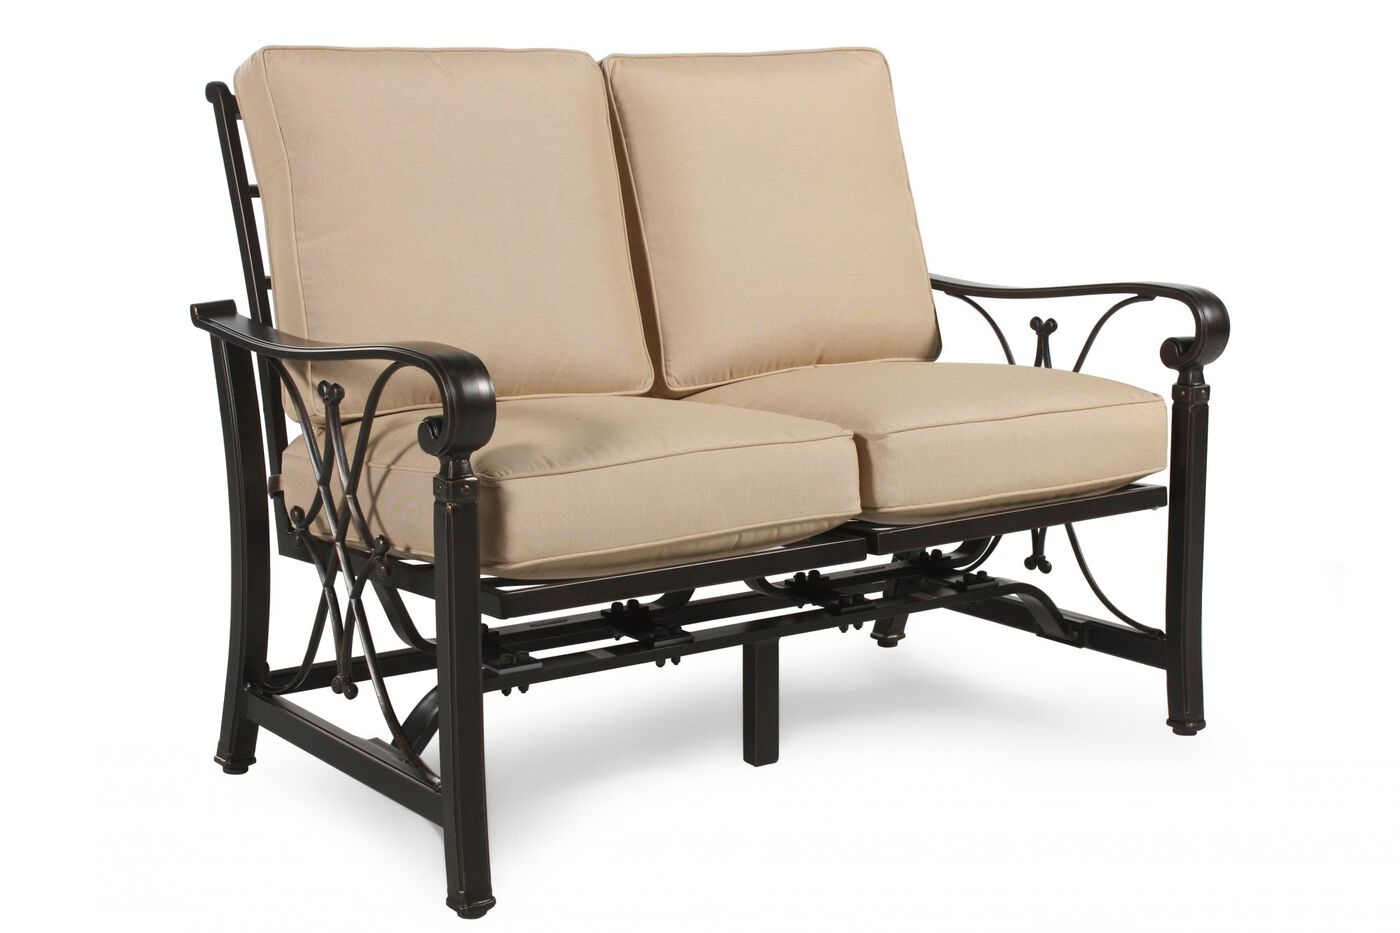 Aluminum patio loveseat with cushion in beige mathis brothers furniture Patio loveseat cushion